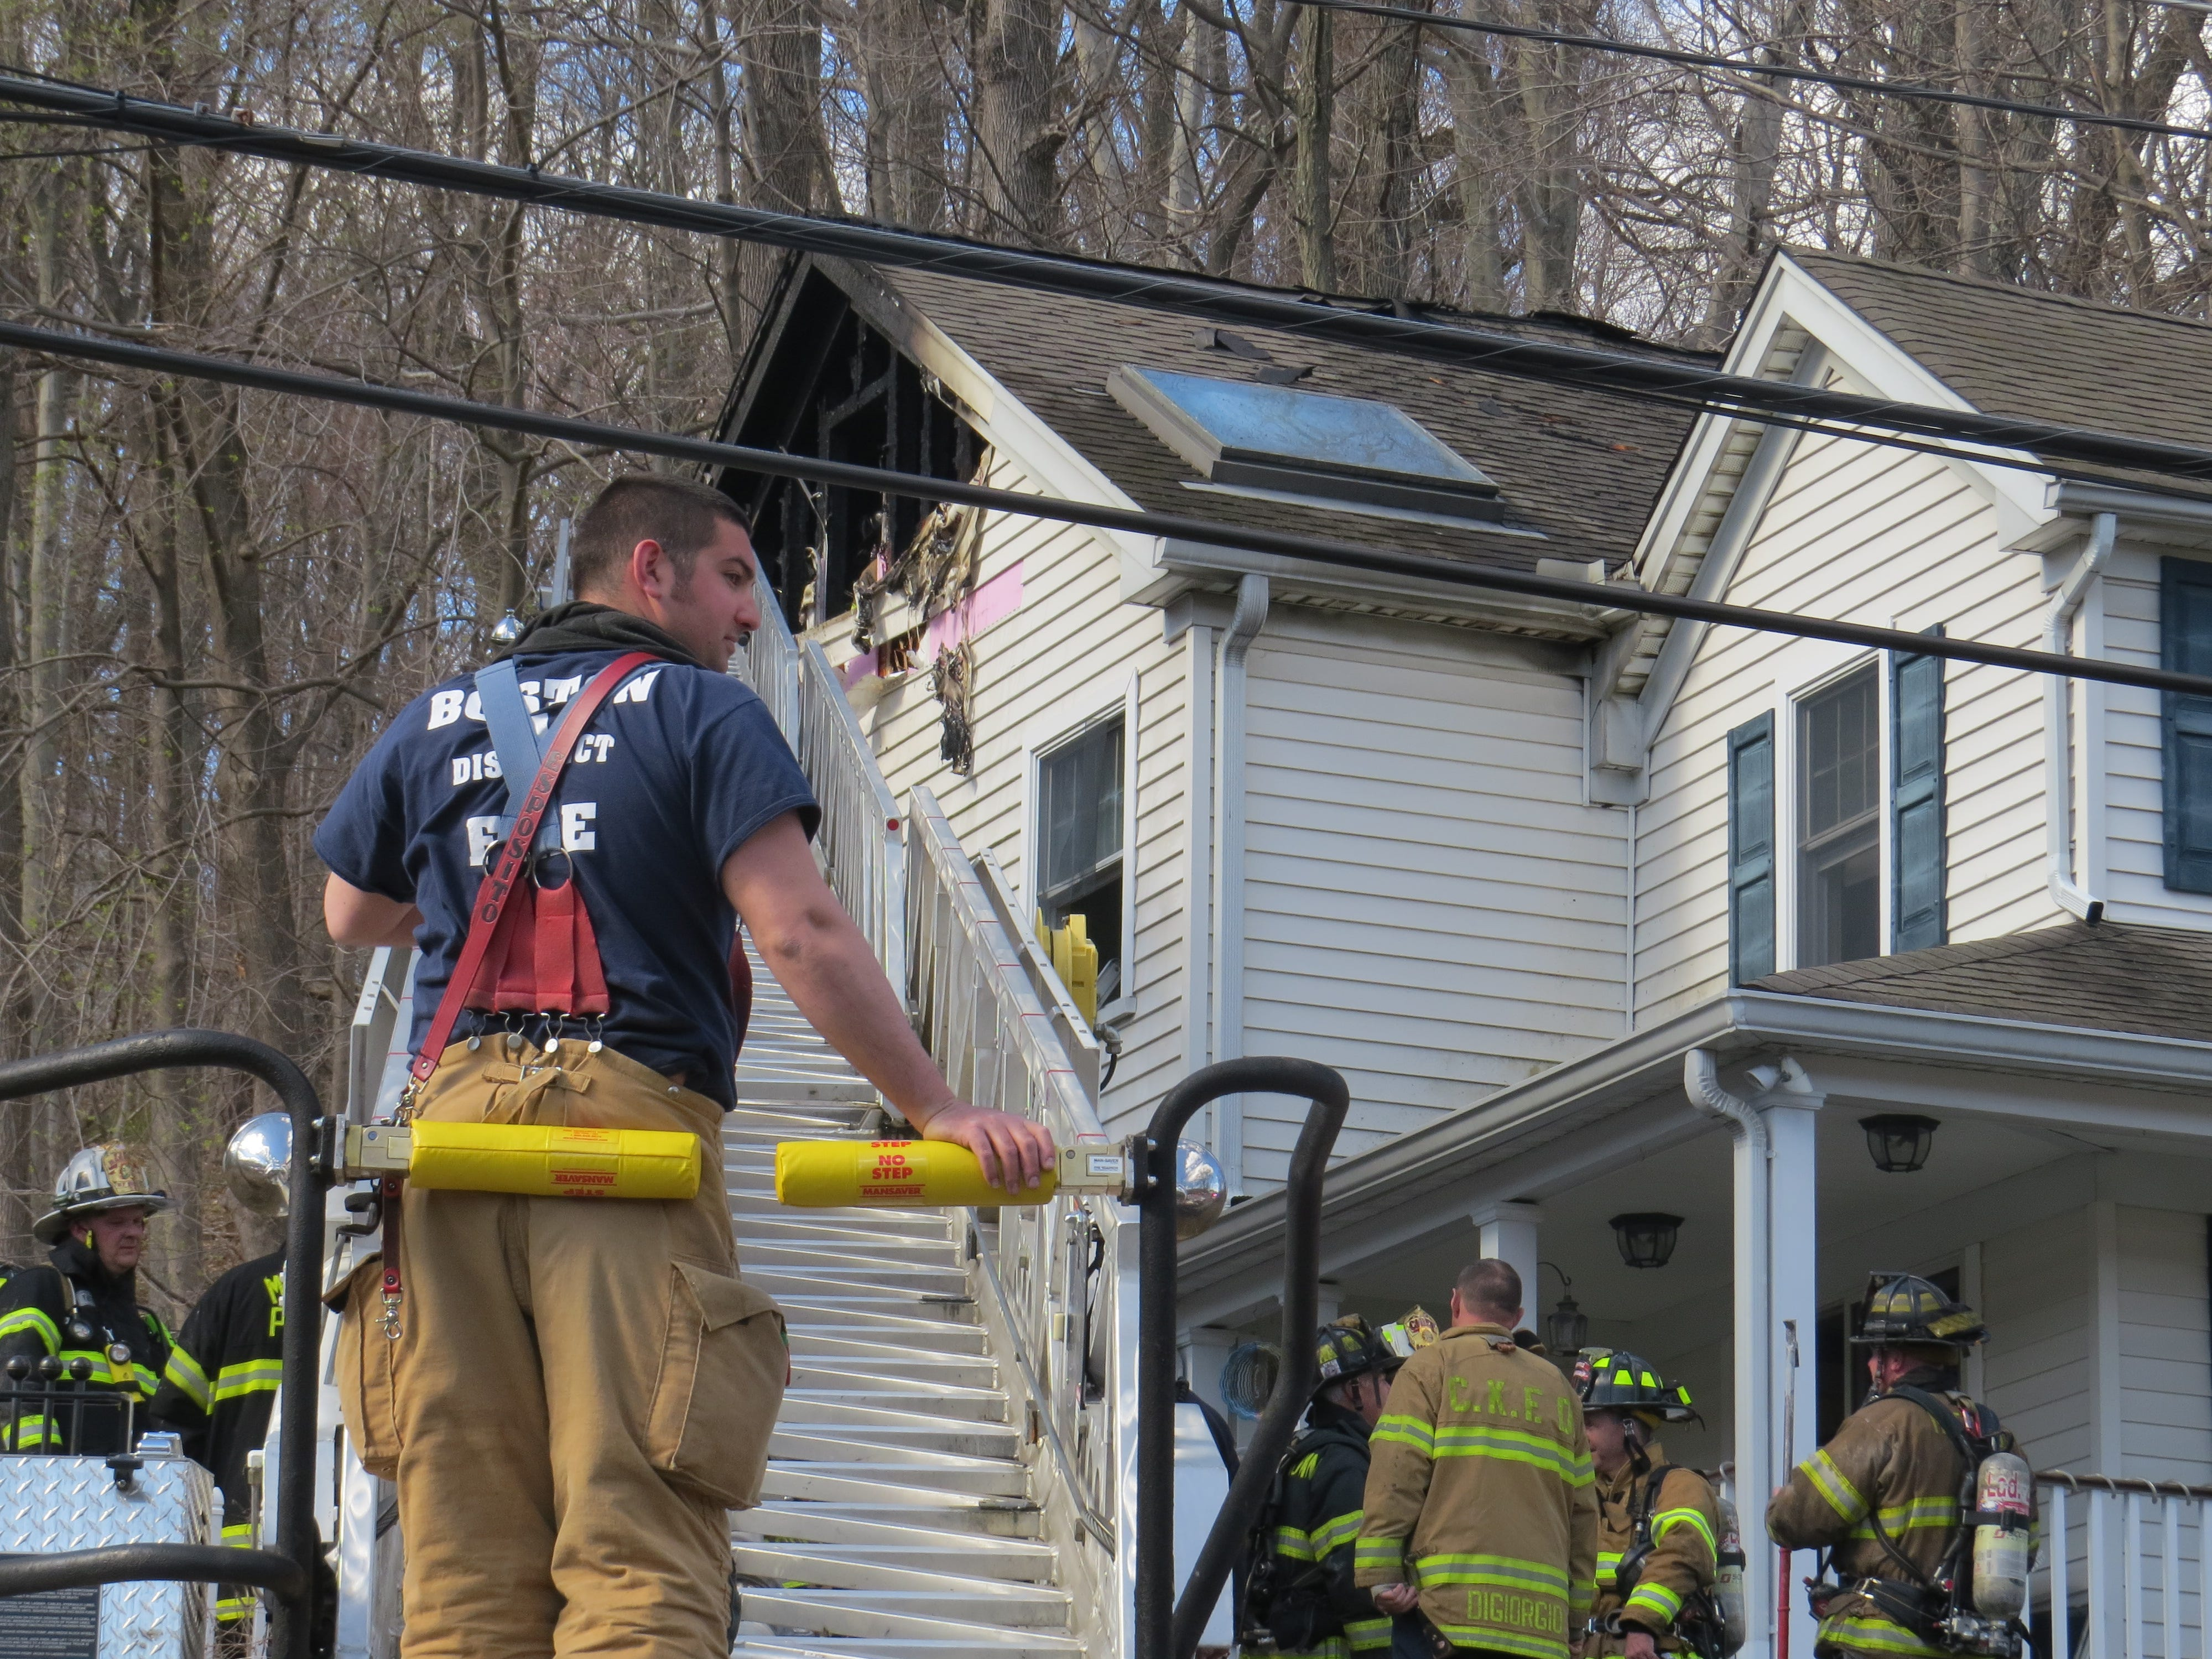 Responders battle a house fire on Route 24 (Mendham Road) in Morris Township. No one was hurt. April 10, 2019